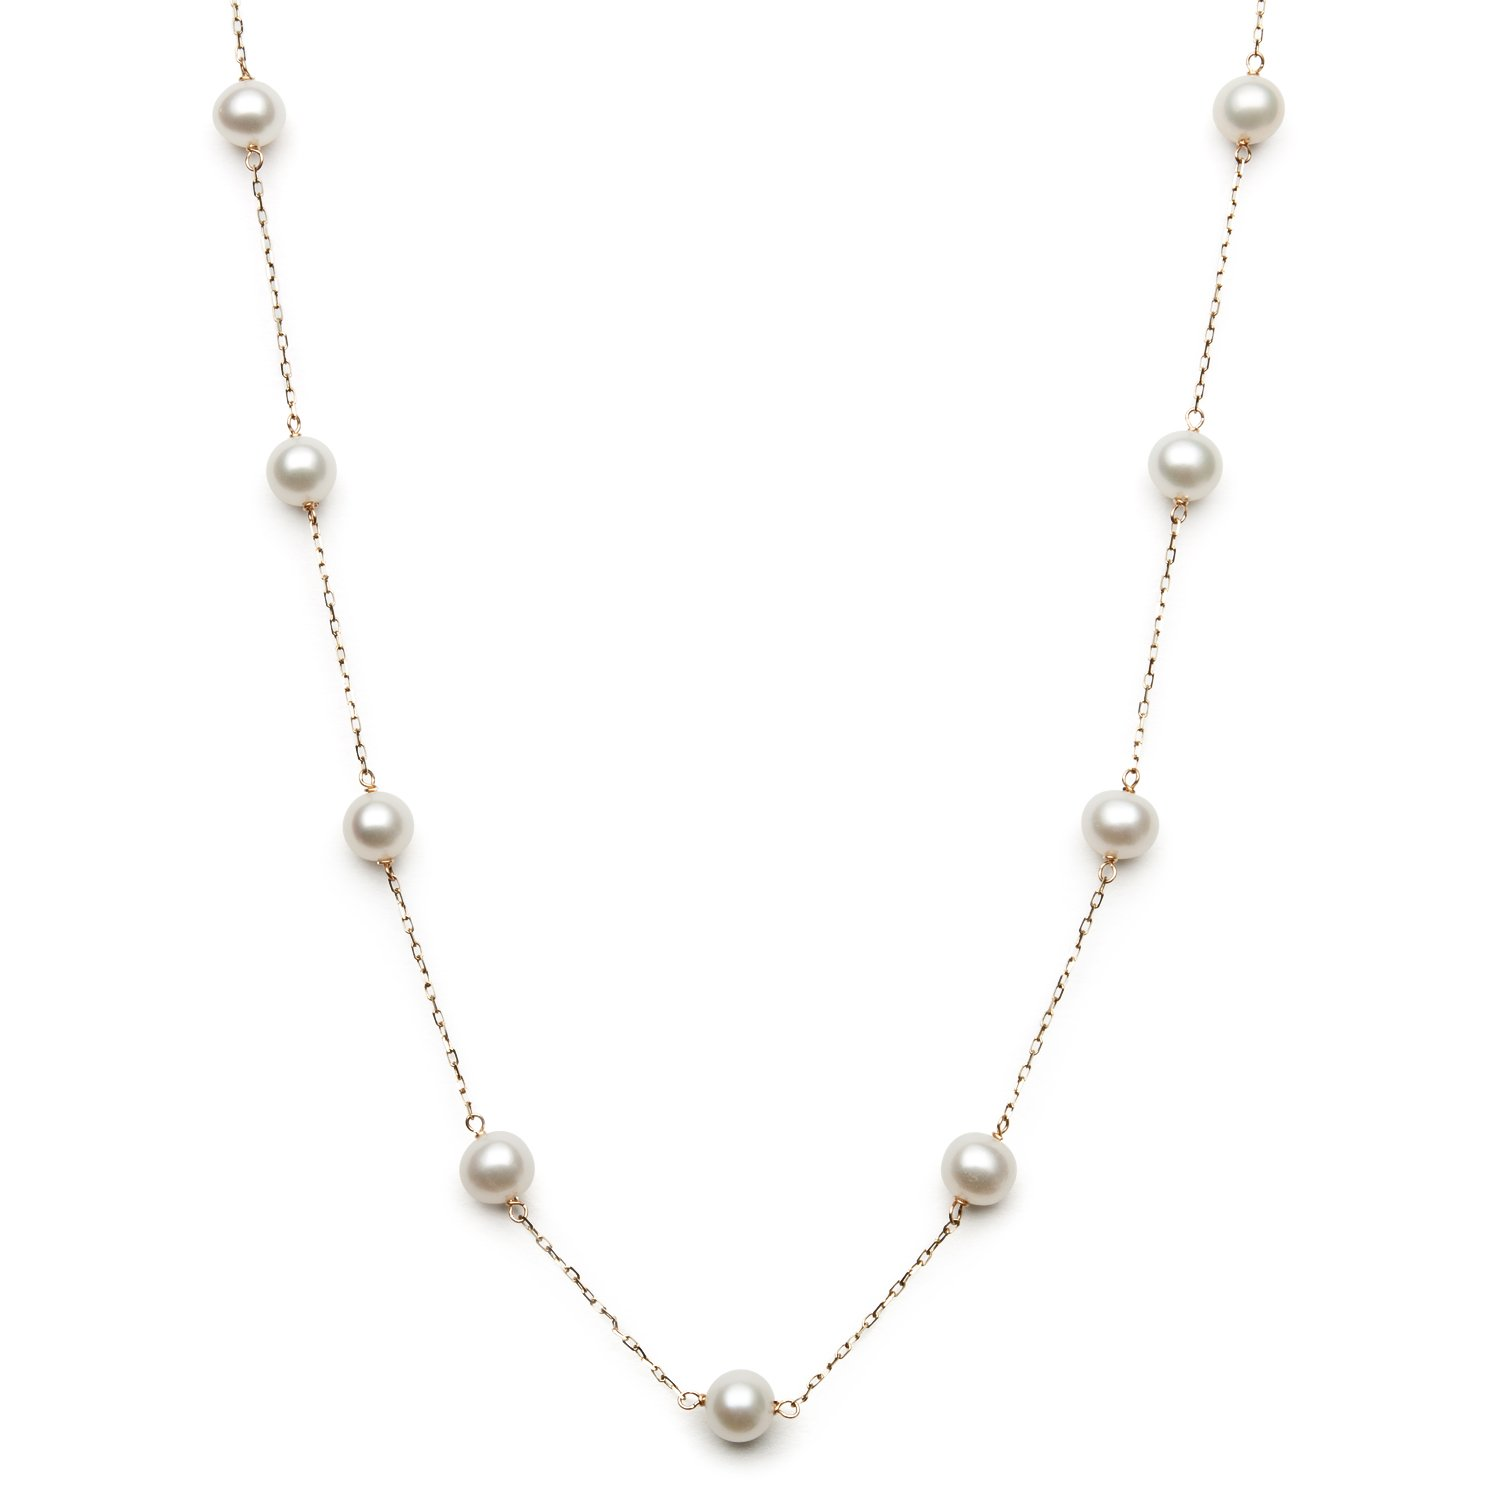 10k Yellow Gold White Cultured Freshwater Pearl Chain Station Tin Cup Necklace, 18'' by Belacqua